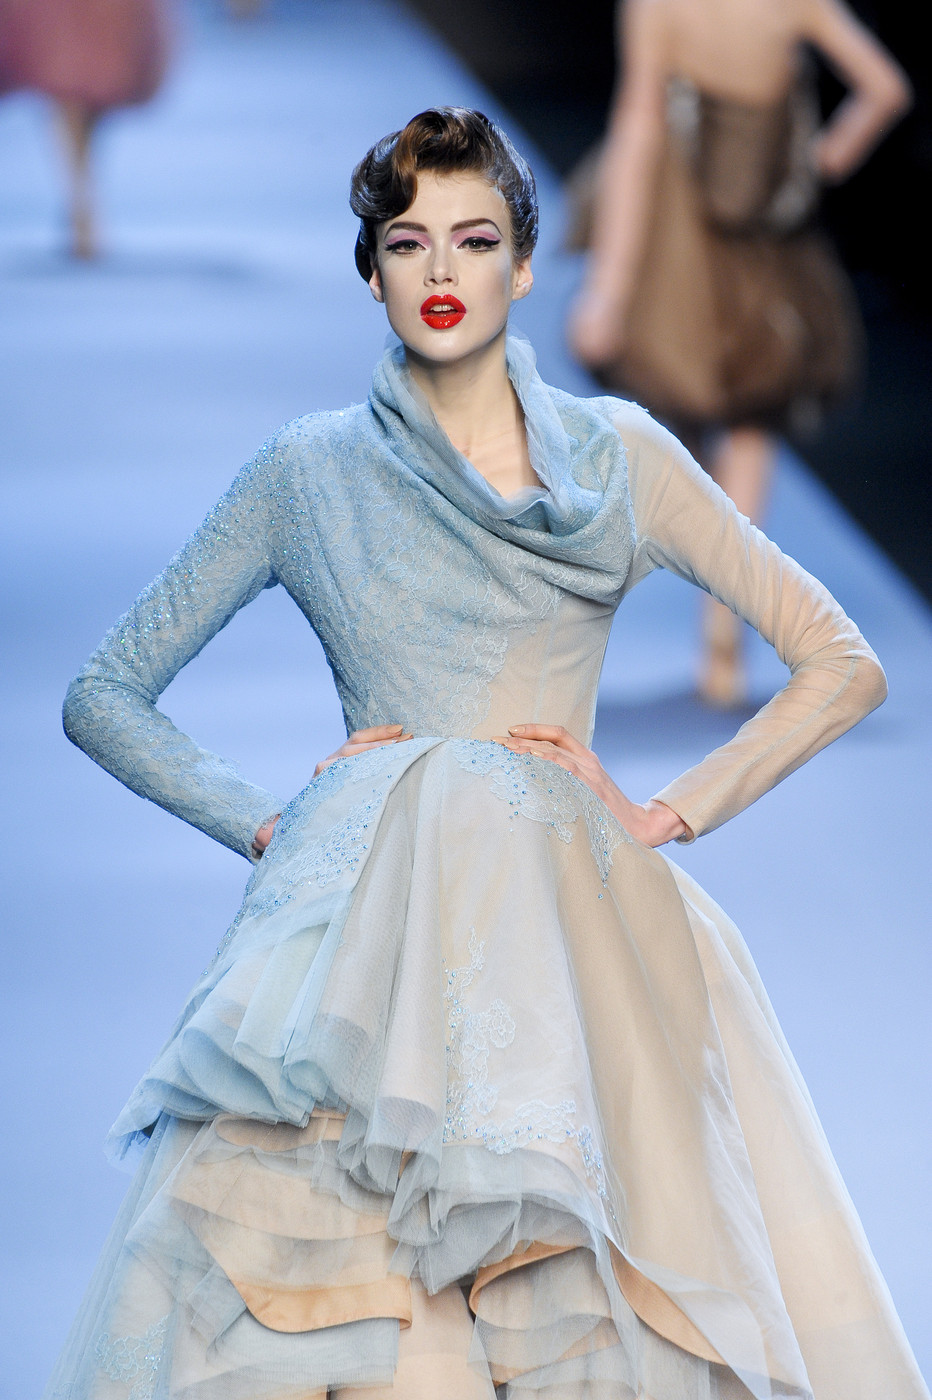 Christian Dior Haute Couture Spring/Summer 2011